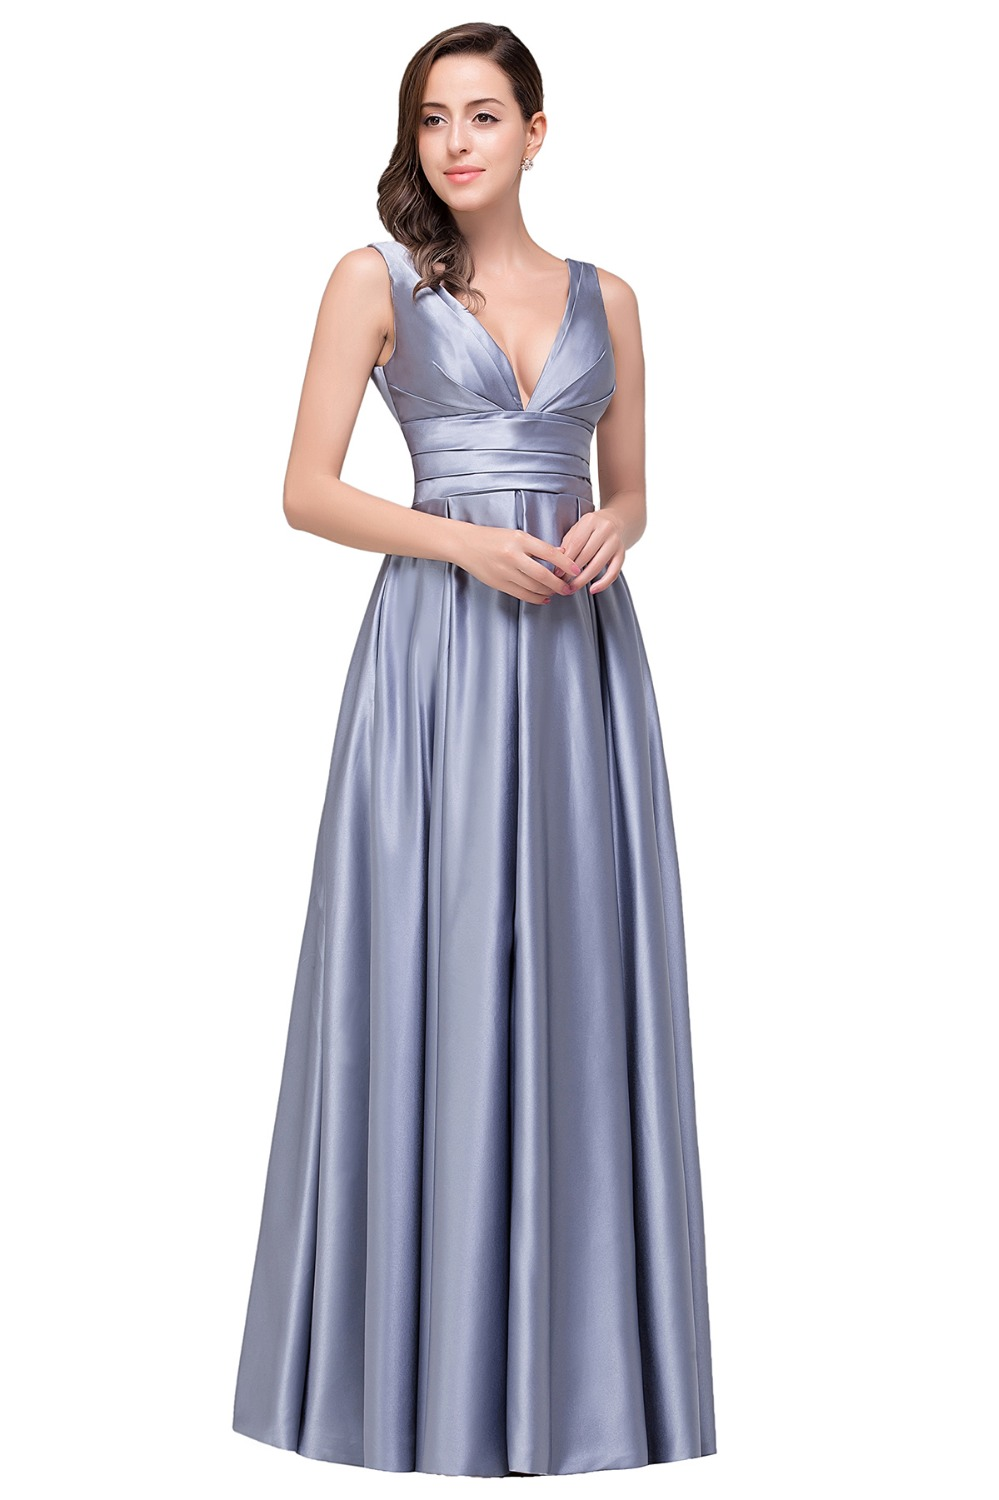 Real photo purple silver long maternity bridesmaid dresses 2017 real photo purple silver long maternity bridesmaid dresses 2017 cheap floor length v neck wedding party dresses vestido madrinha in bridesmaid dresses from ombrellifo Image collections